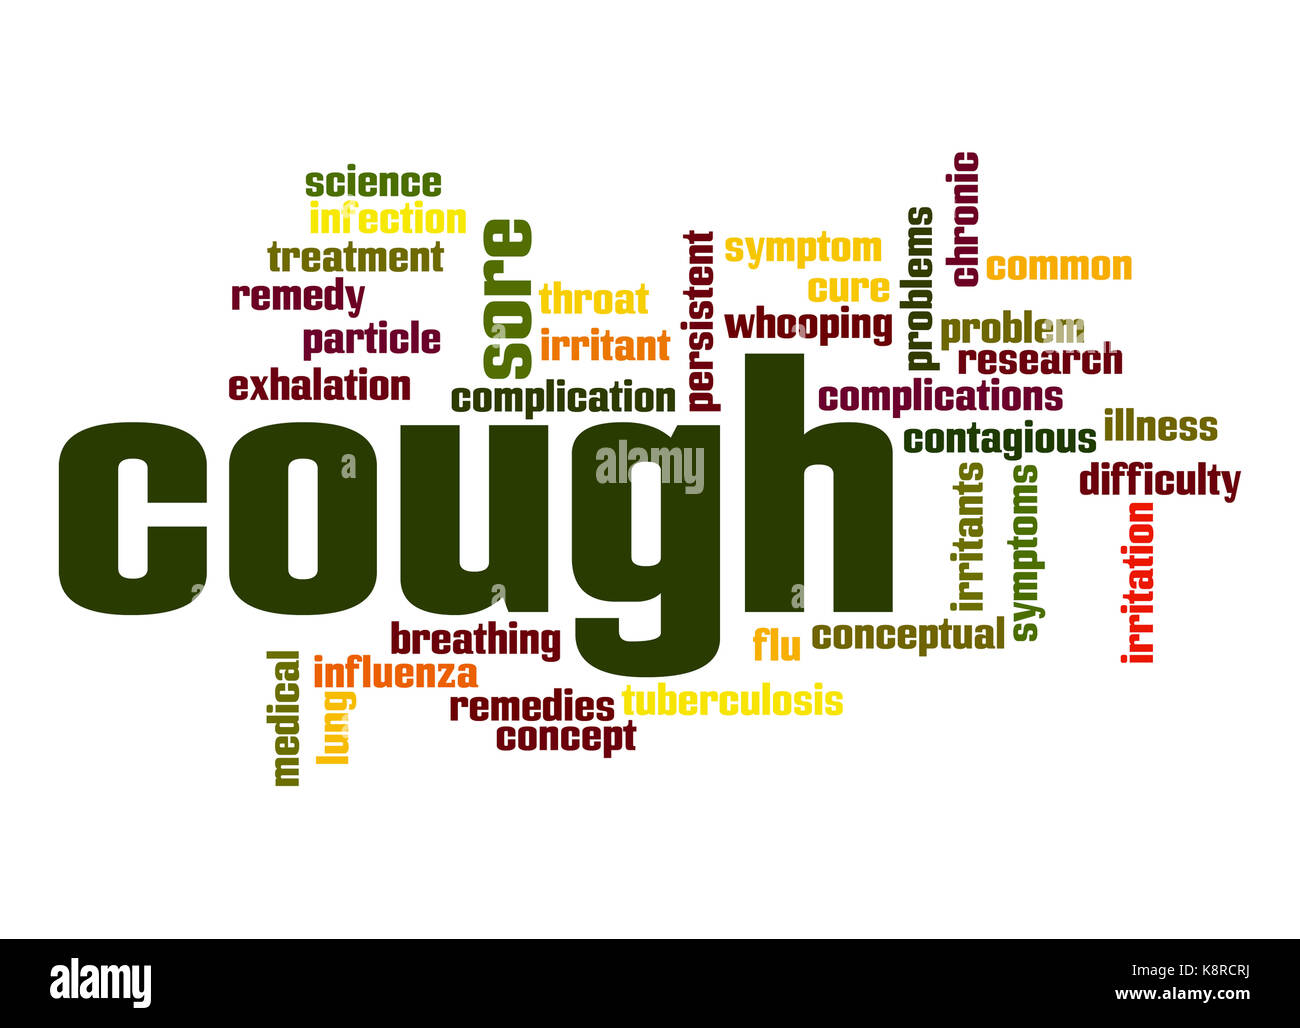 Cough word cloud - Stock Image